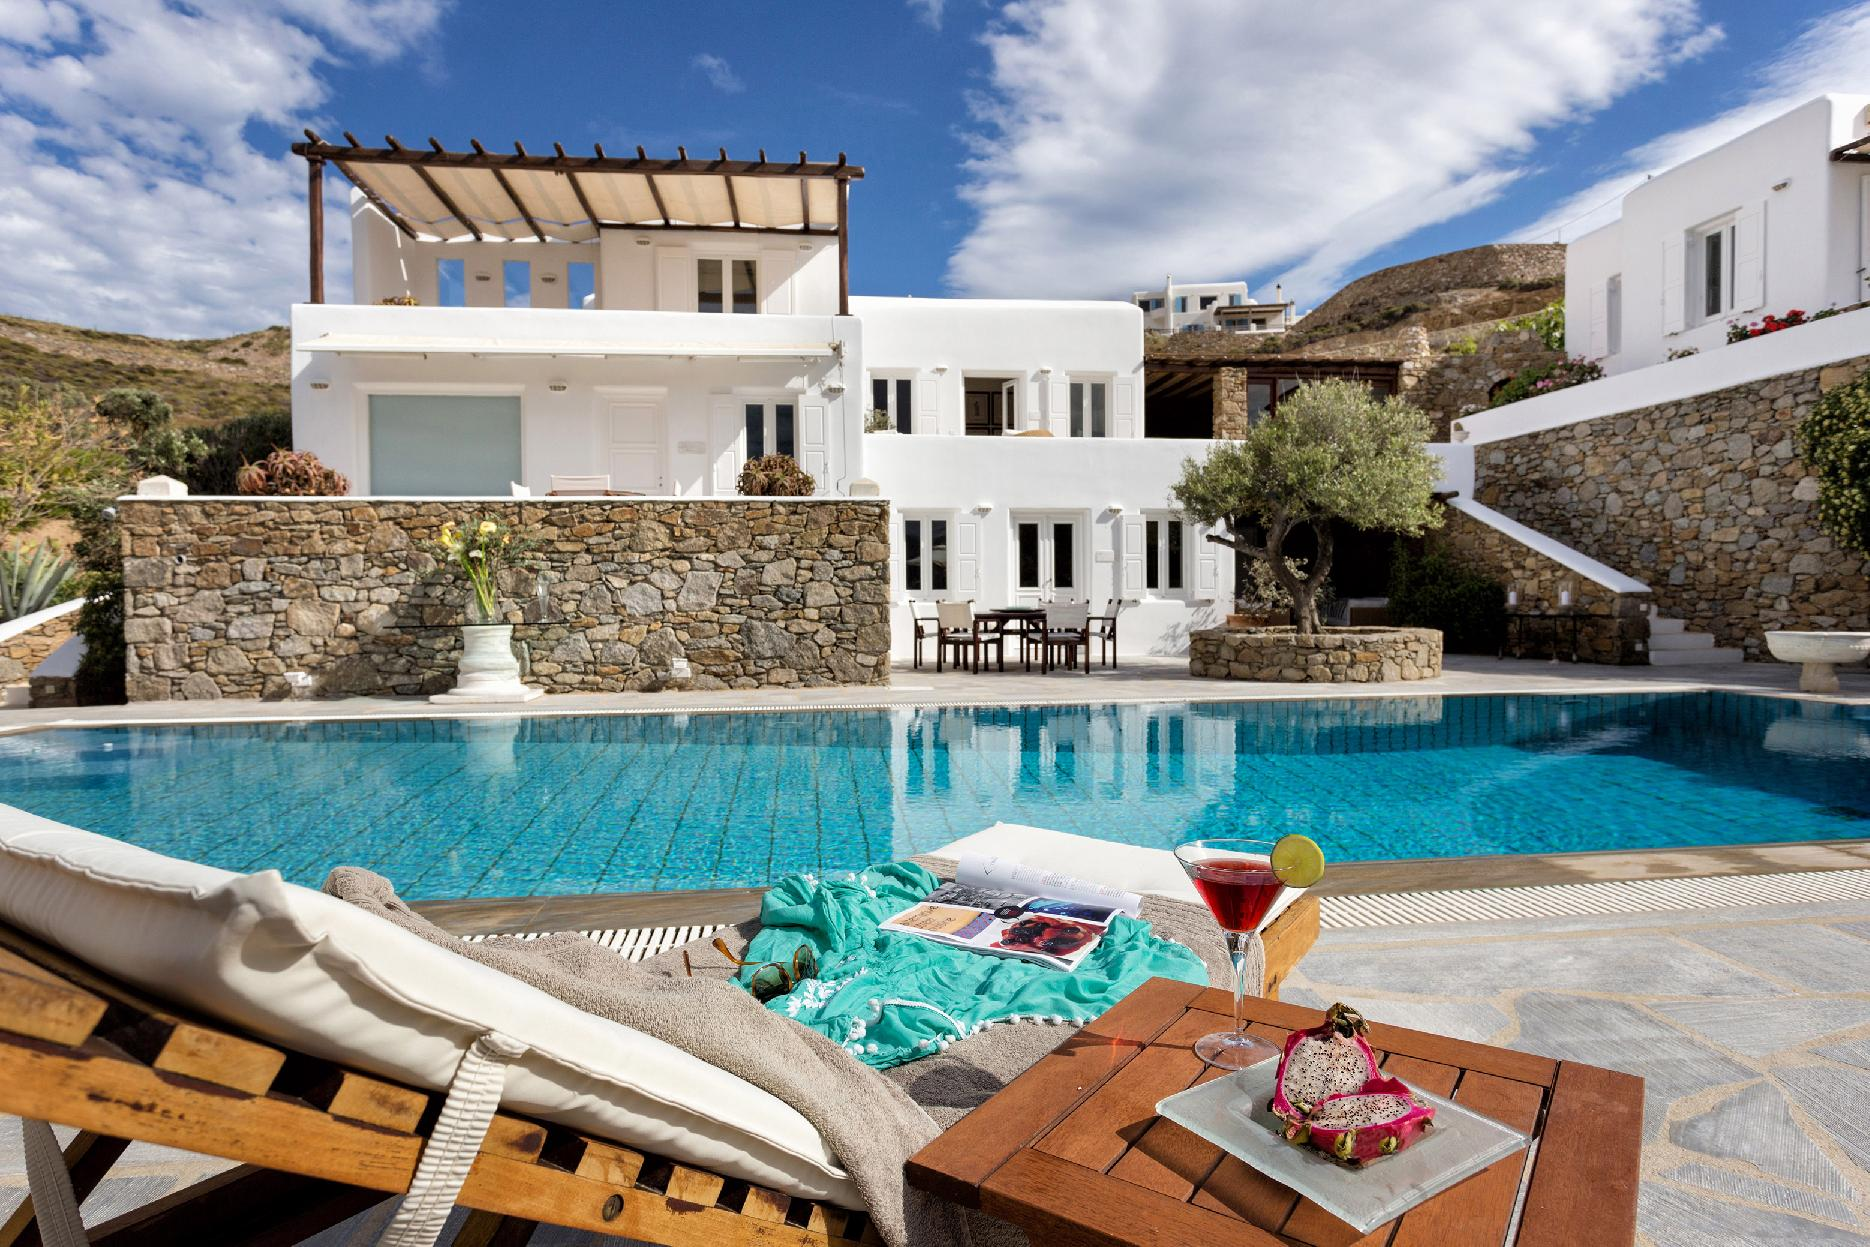 Apartment The Galaxy Mykonos villa with large pool and yoga platform photo 6005337